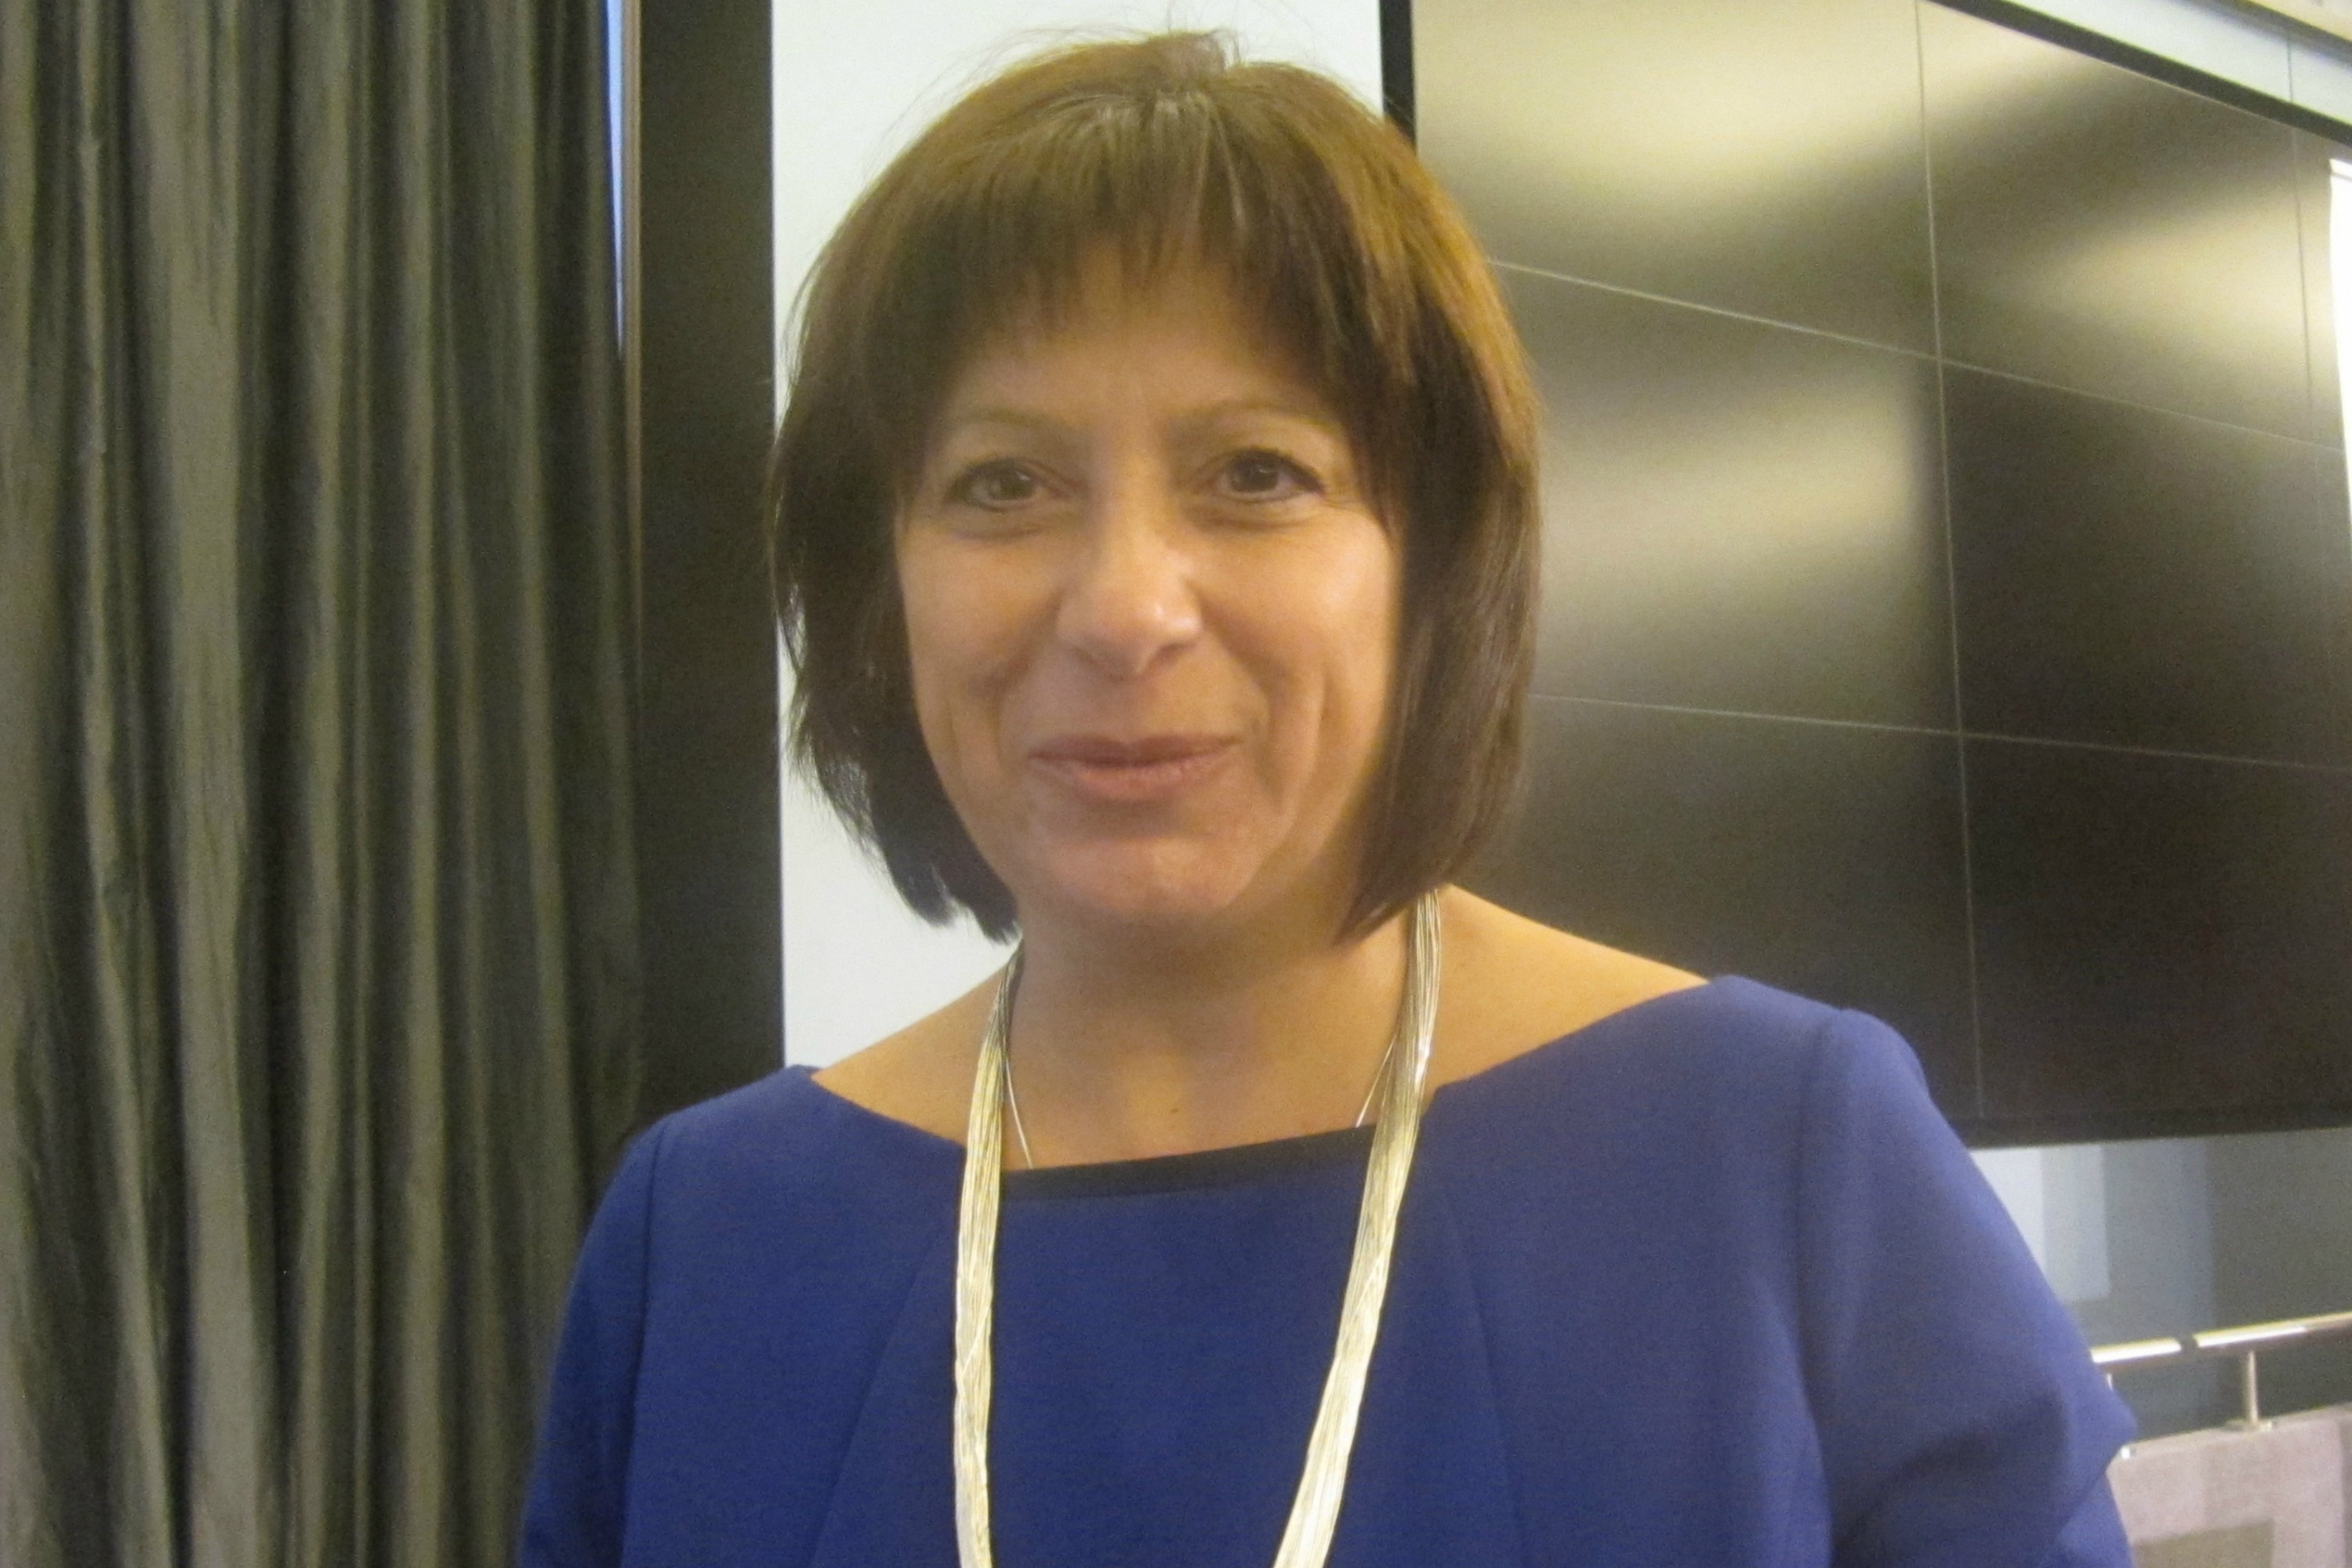 Natalie Ann Jaresko is not part of the new cabinet [Georgi Gotev]